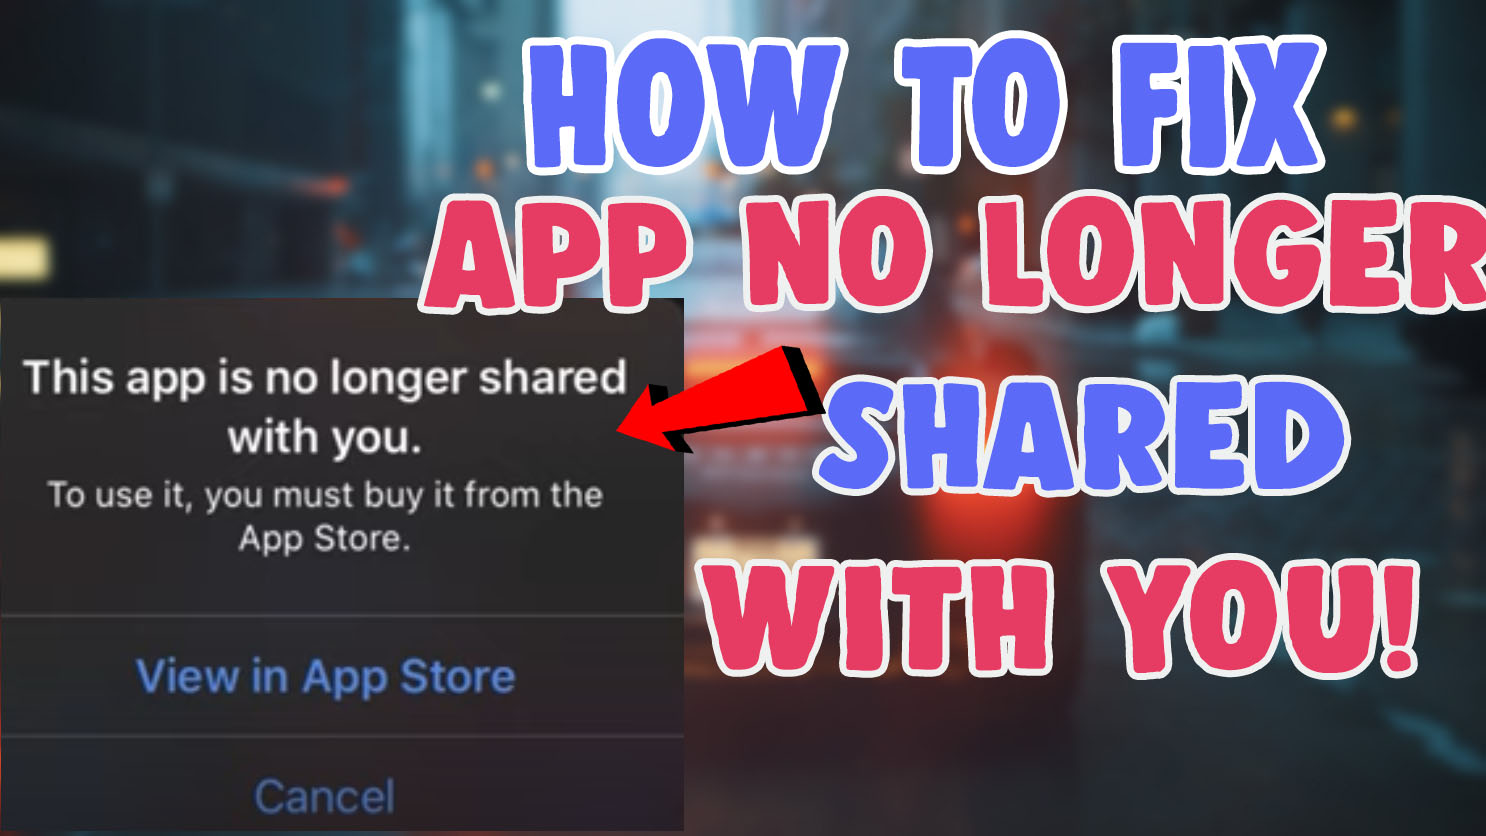 youtube this app is no longer shared with you